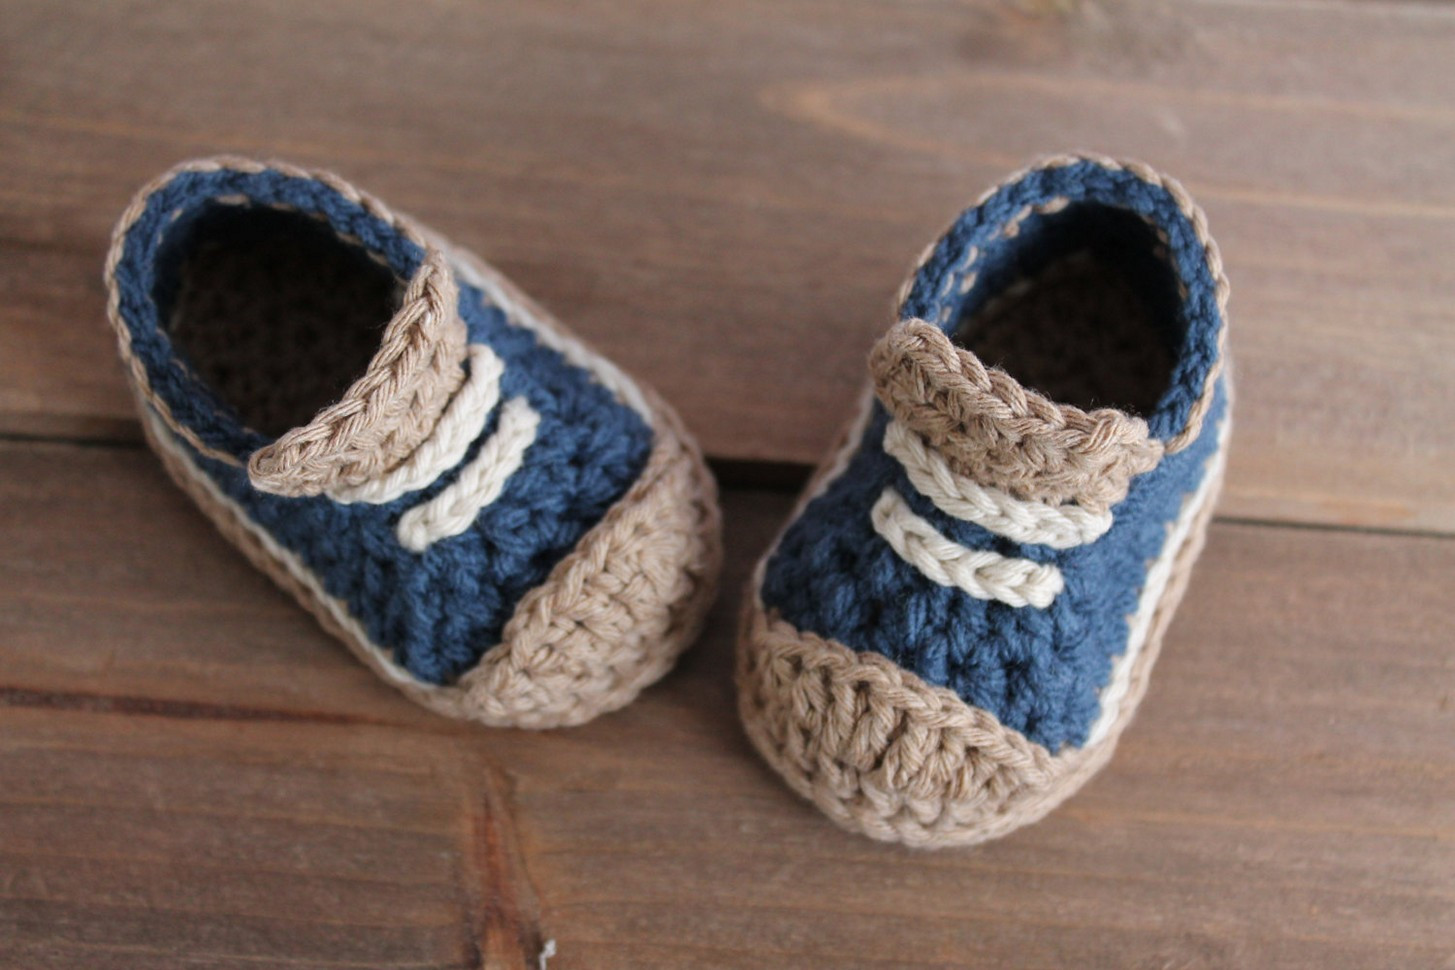 Crochet Baby Sandals Awesome Baby Crochet Sandals Several Pieces Of Ideas You Can Try Of New 46 Models Crochet Baby Sandals